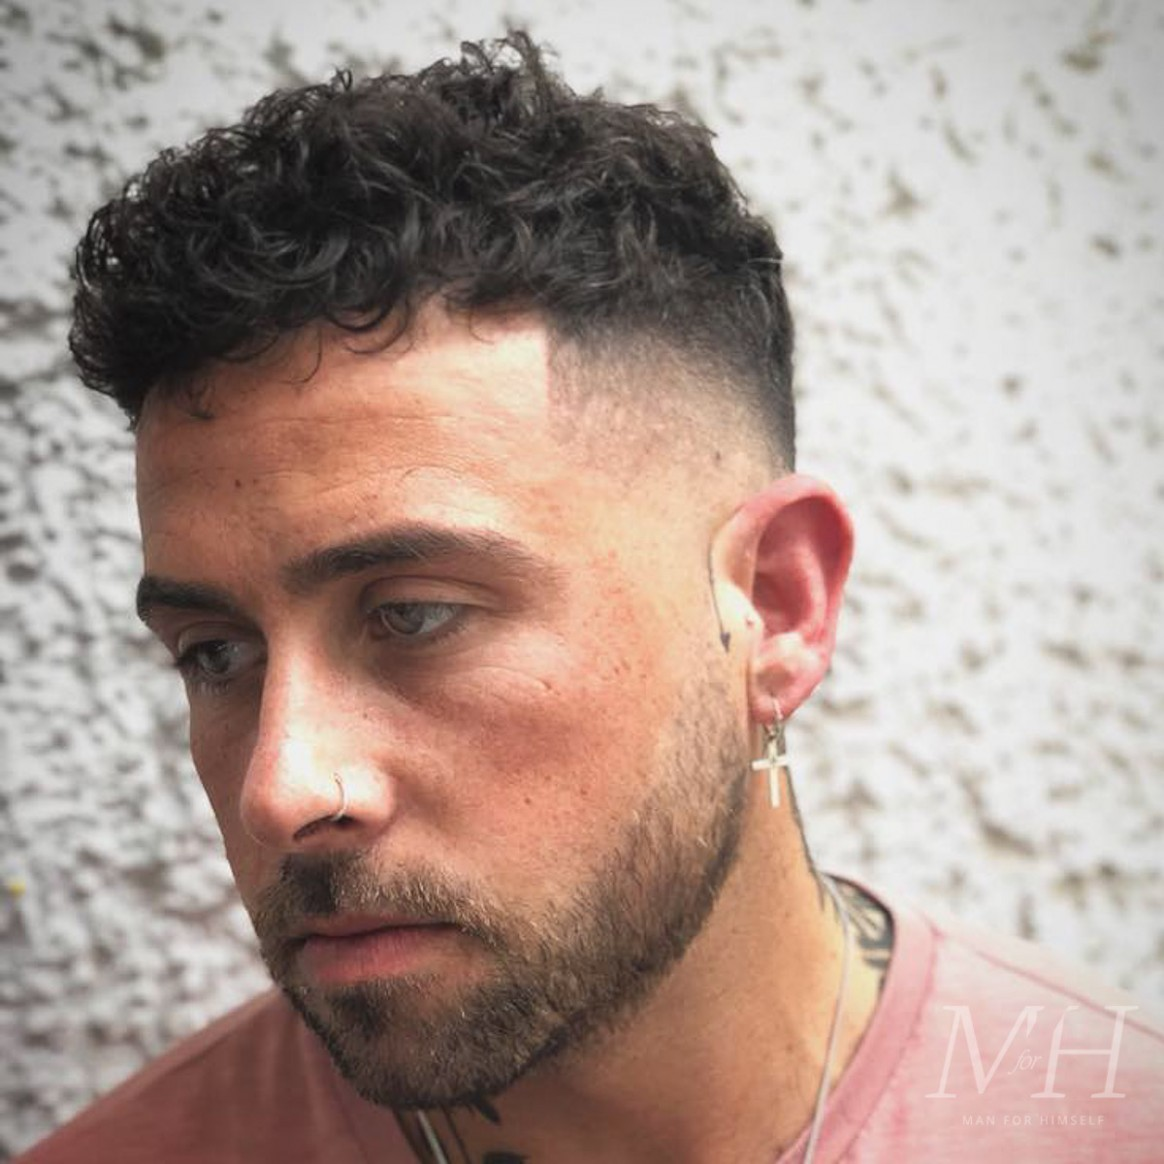 French Crop With Curly Hair Man For Himself Curly Crop Haircut